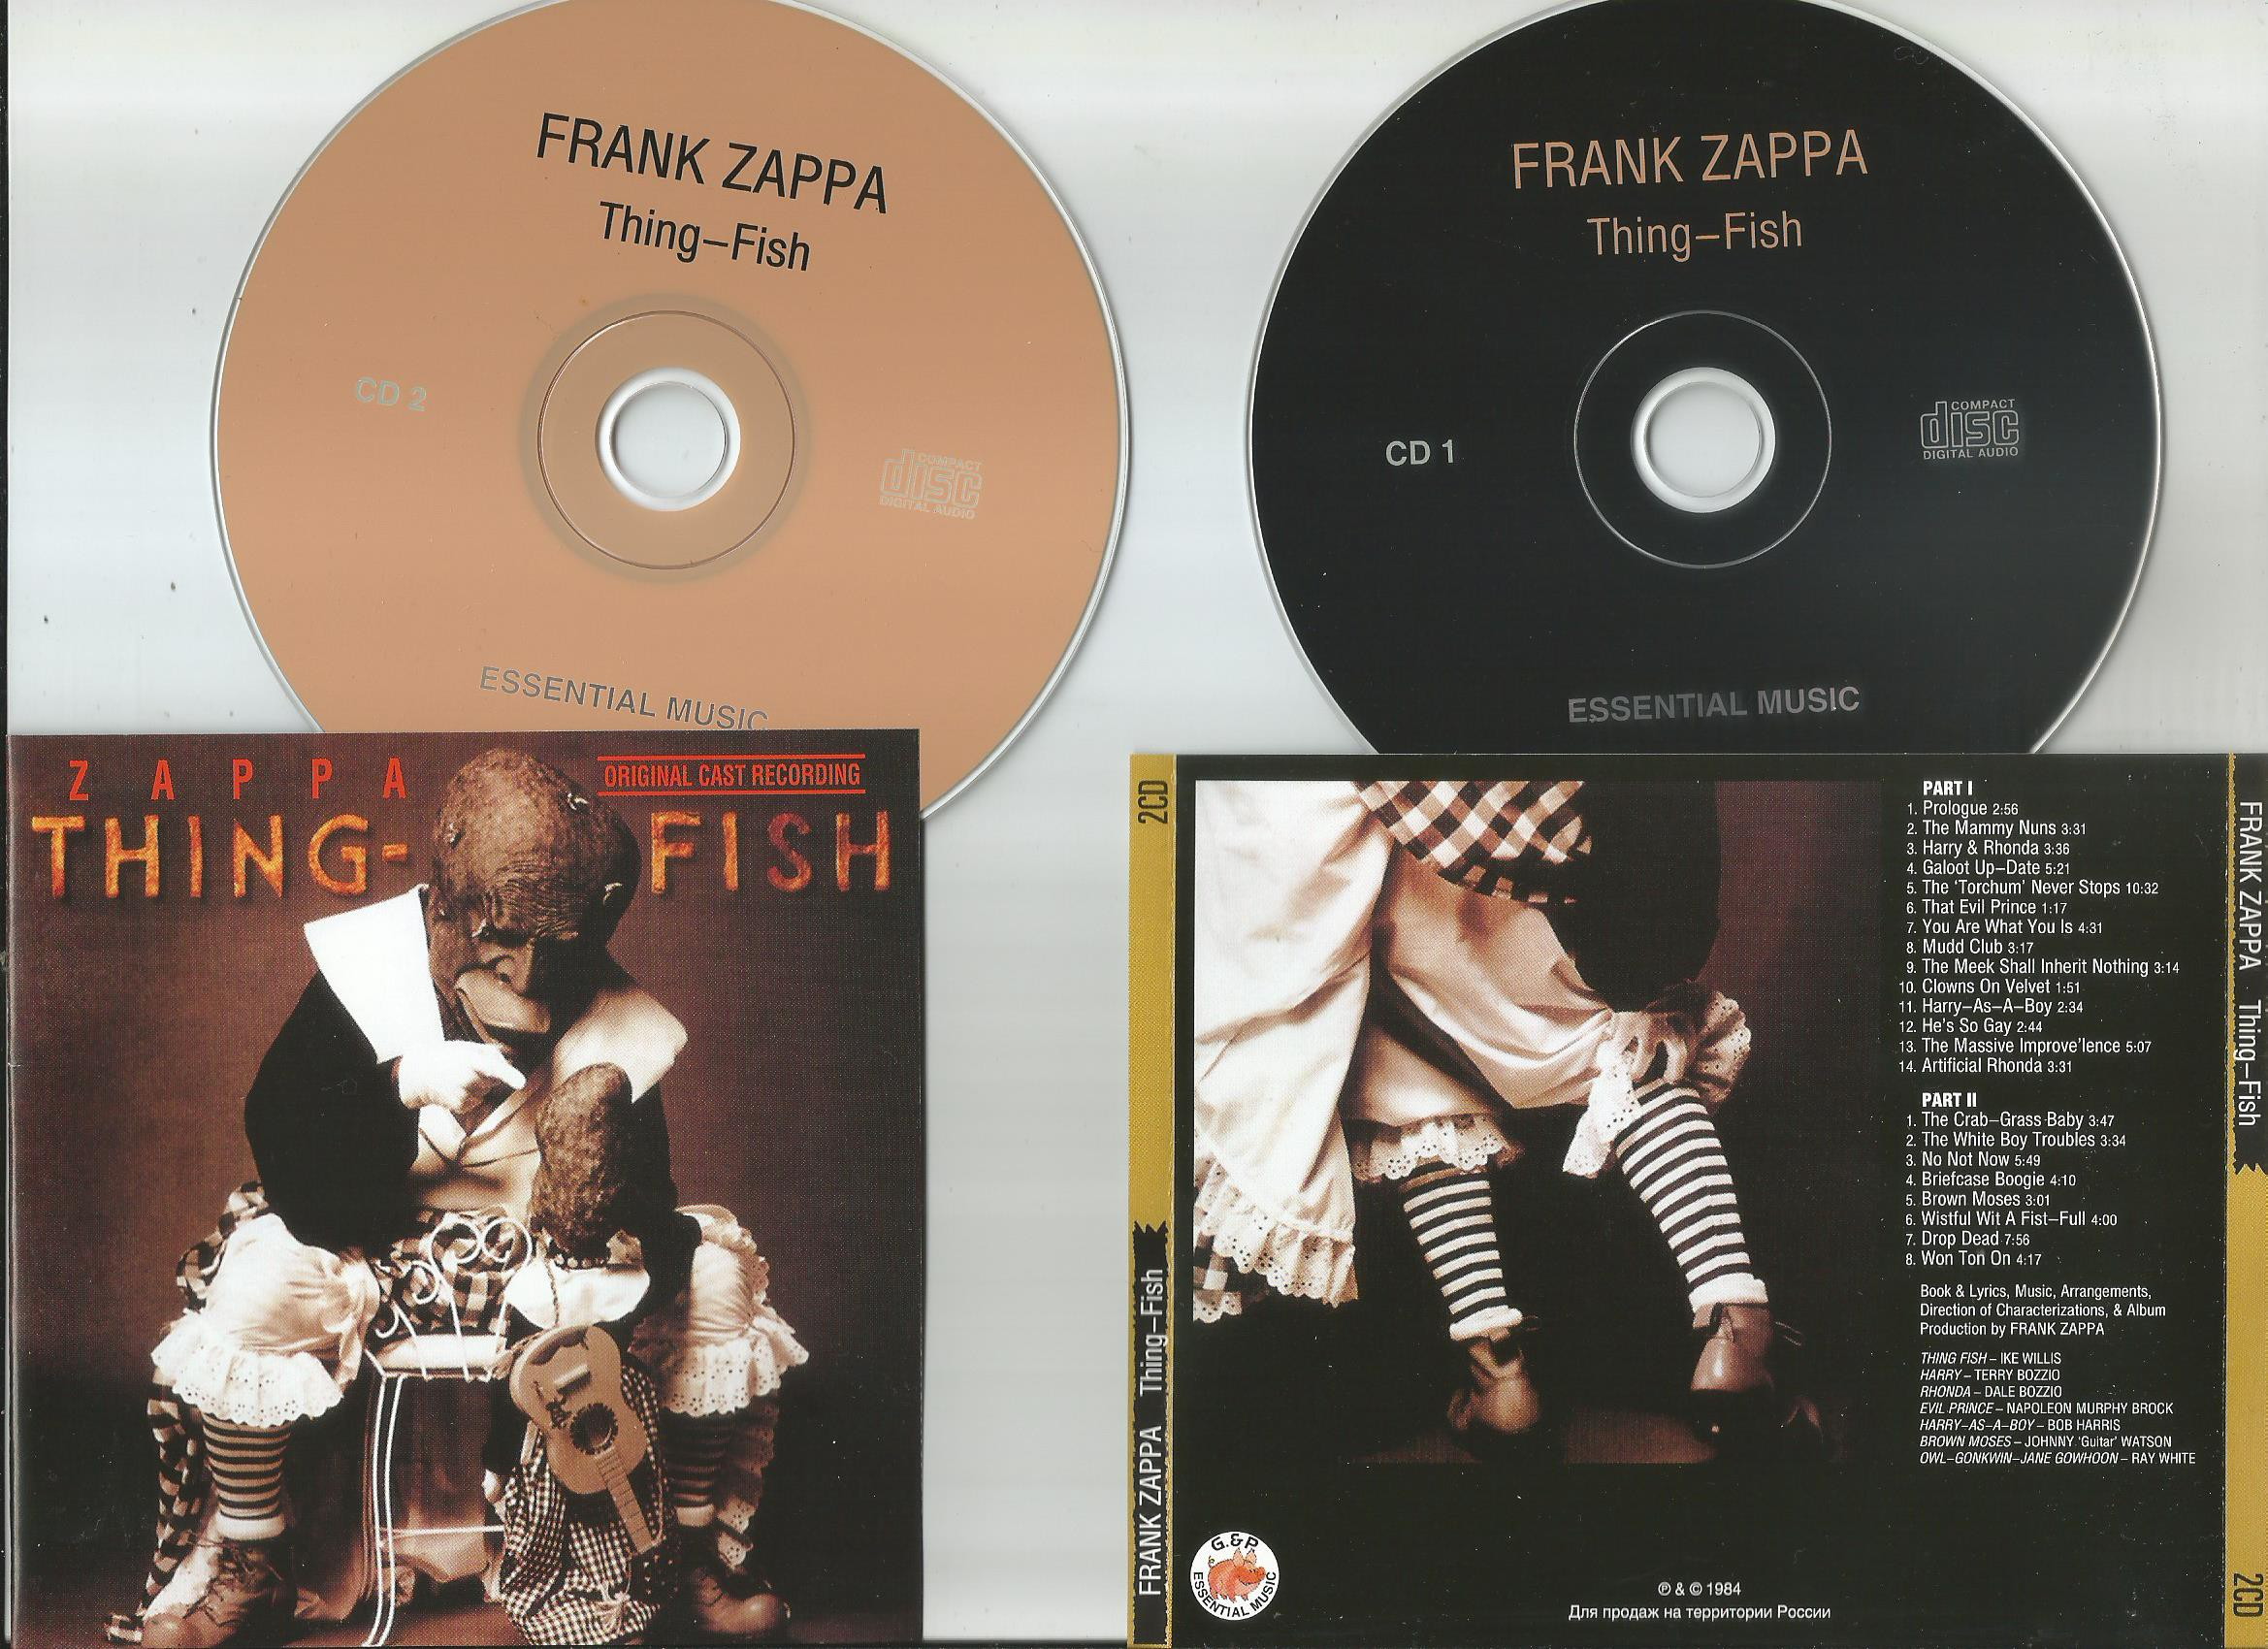 Frank Zappa Thing Fish Records Lps Vinyl And Cds